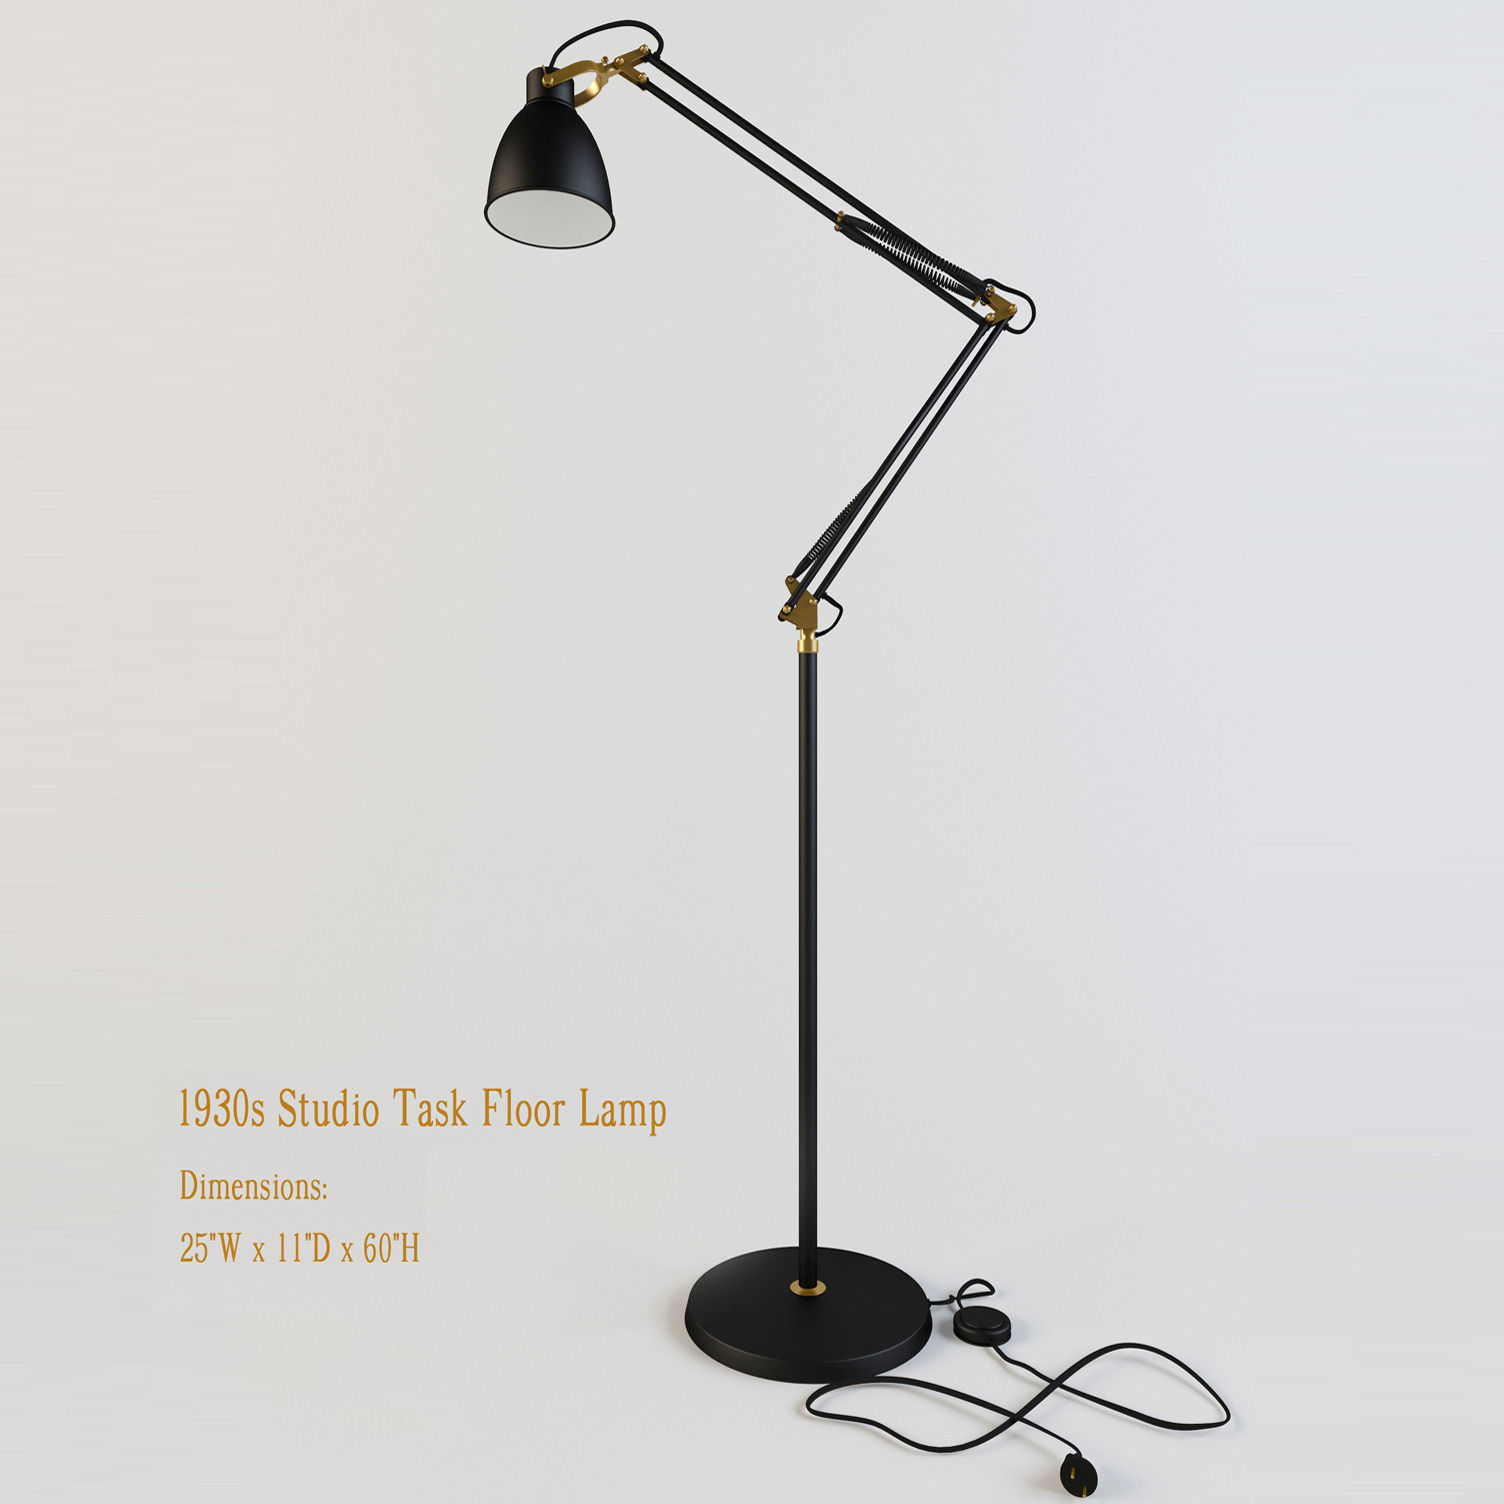 Restoration hardware 1930s studio task floor lamp 3d model max obj restoration hardware 1930s studio task floor lamp 3d model max obj 3ds mtl 1 aloadofball Images